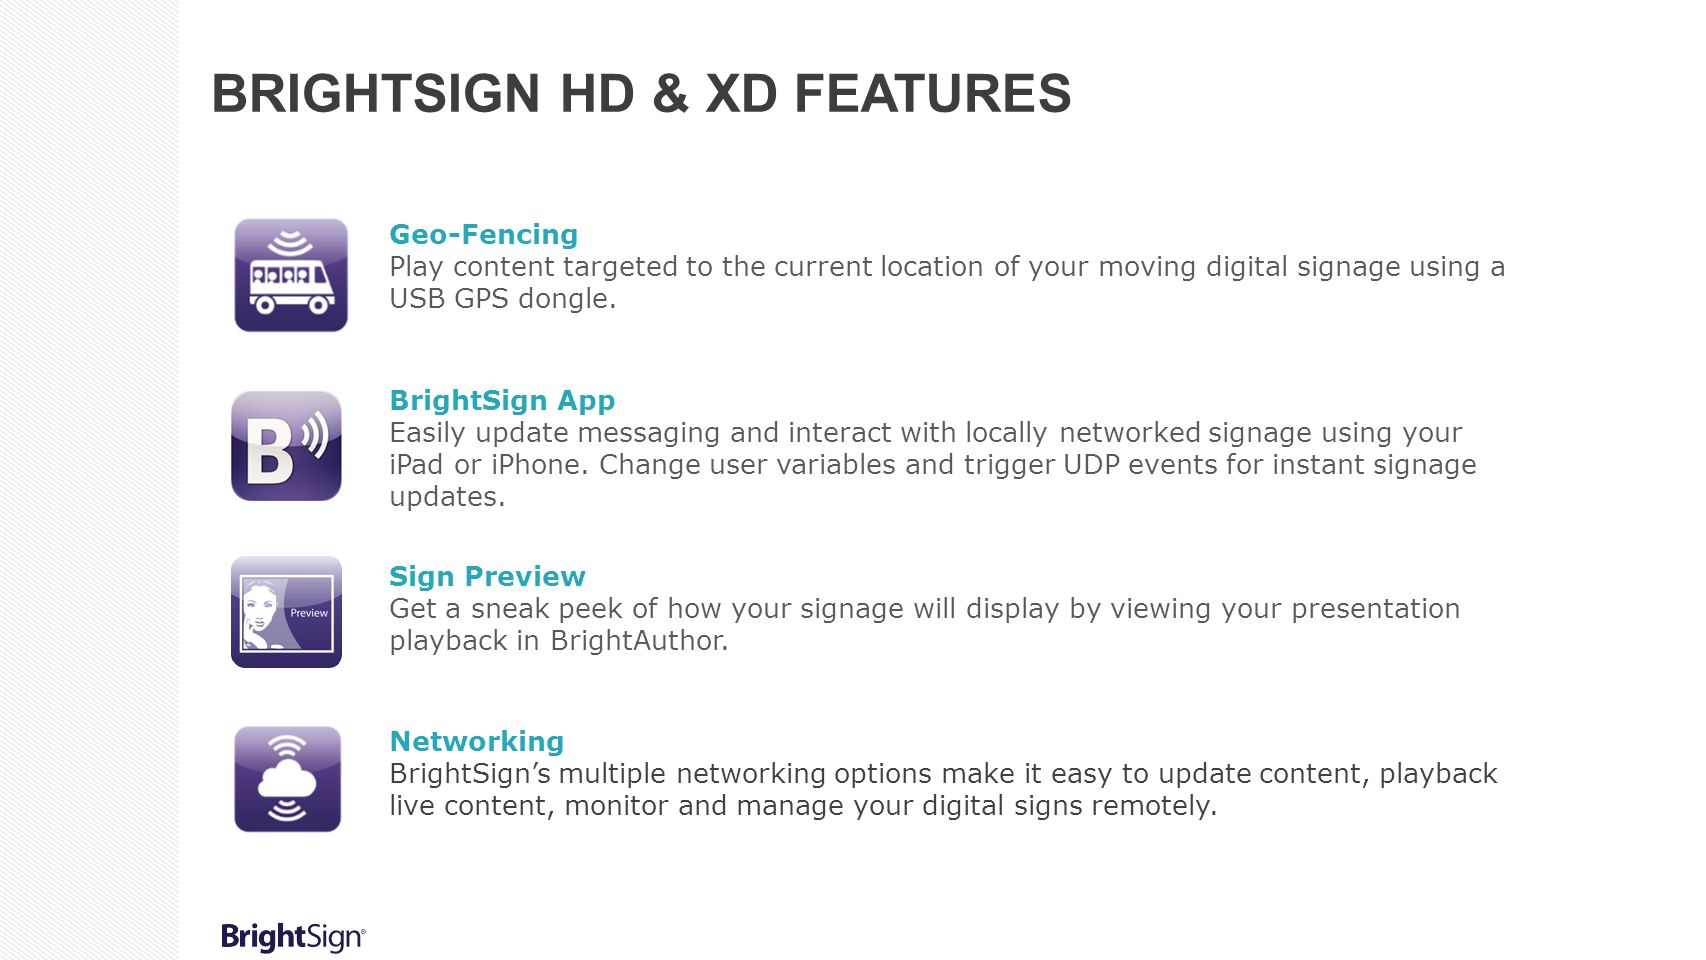 Geo-Fencing Play content targeted to the current location of your moving digital signage using a USB GPS dongle. BrightSign App Easily update messagin